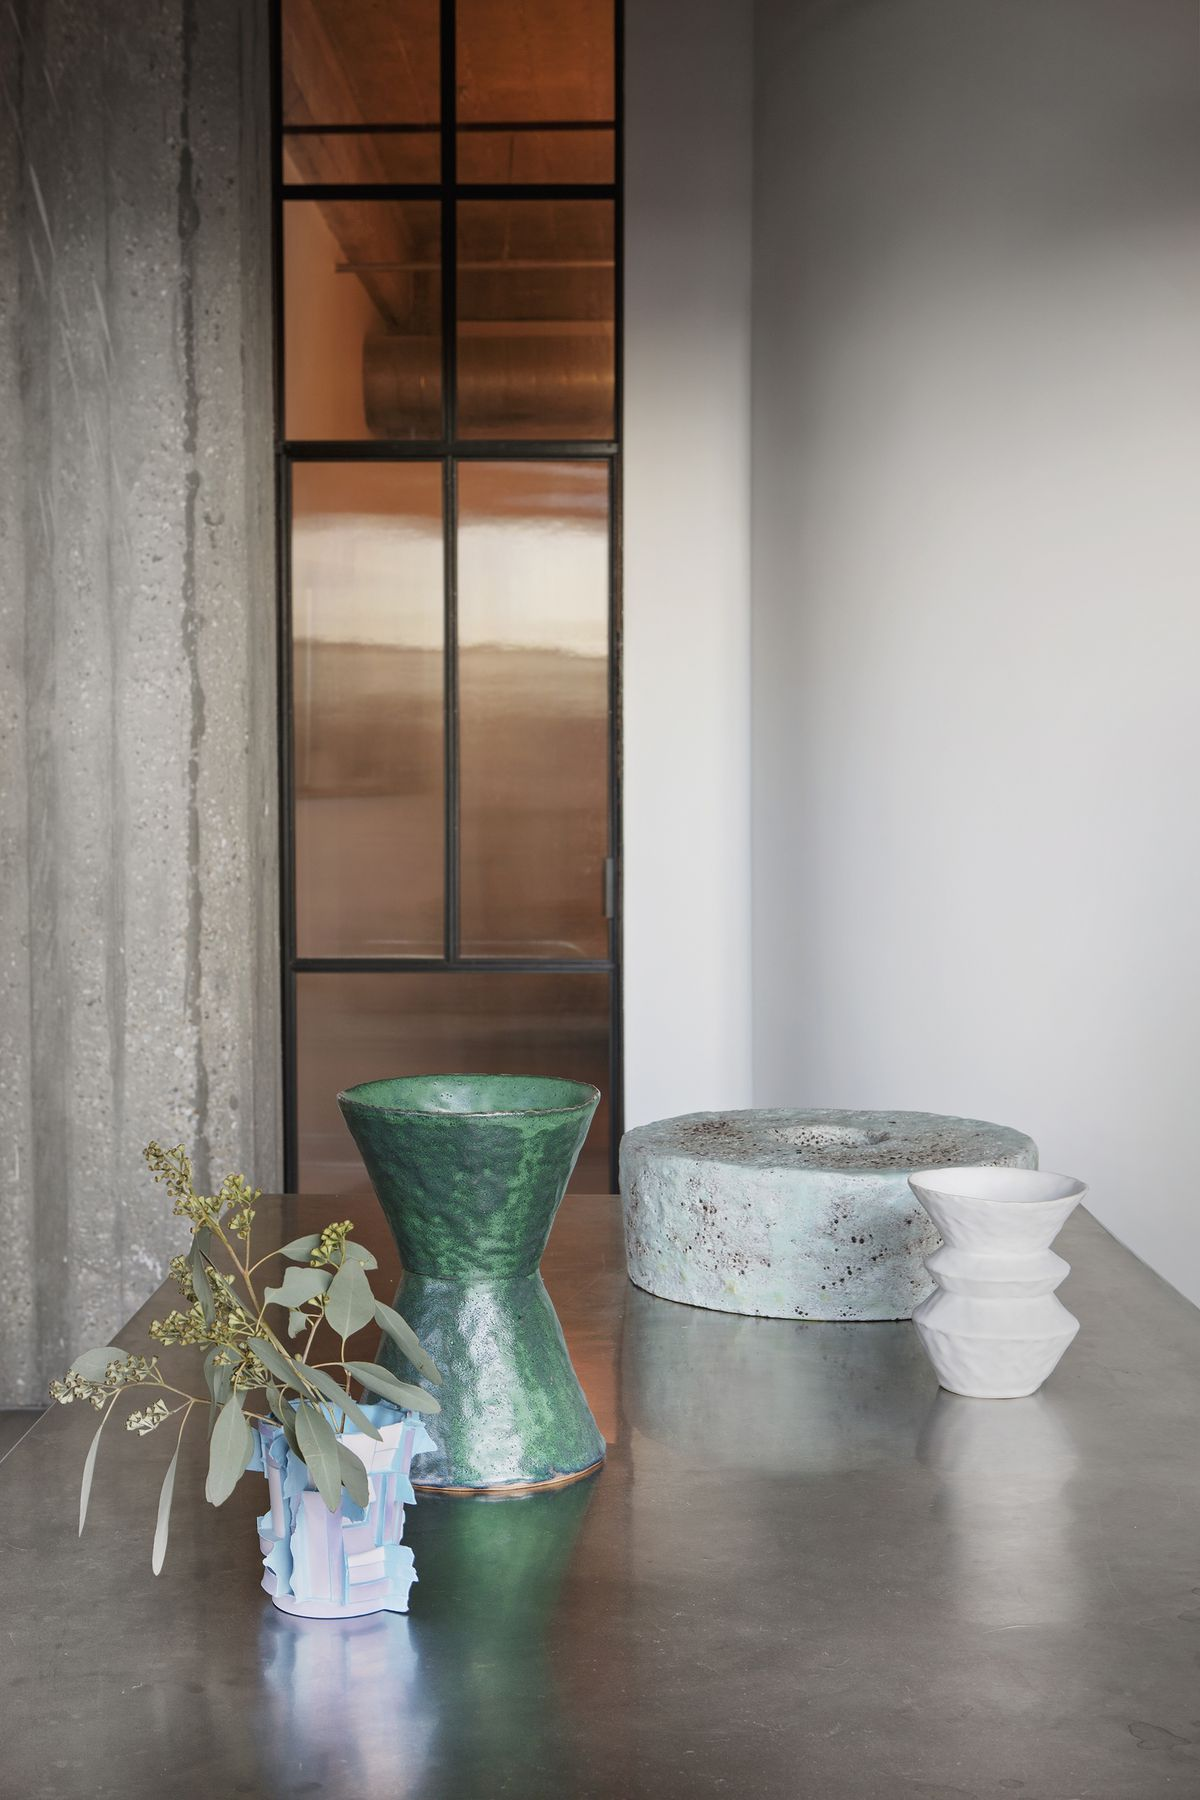 Vases and other assorted objects sit on a metallic surface. in the distance is a window and a grey concrete wall.